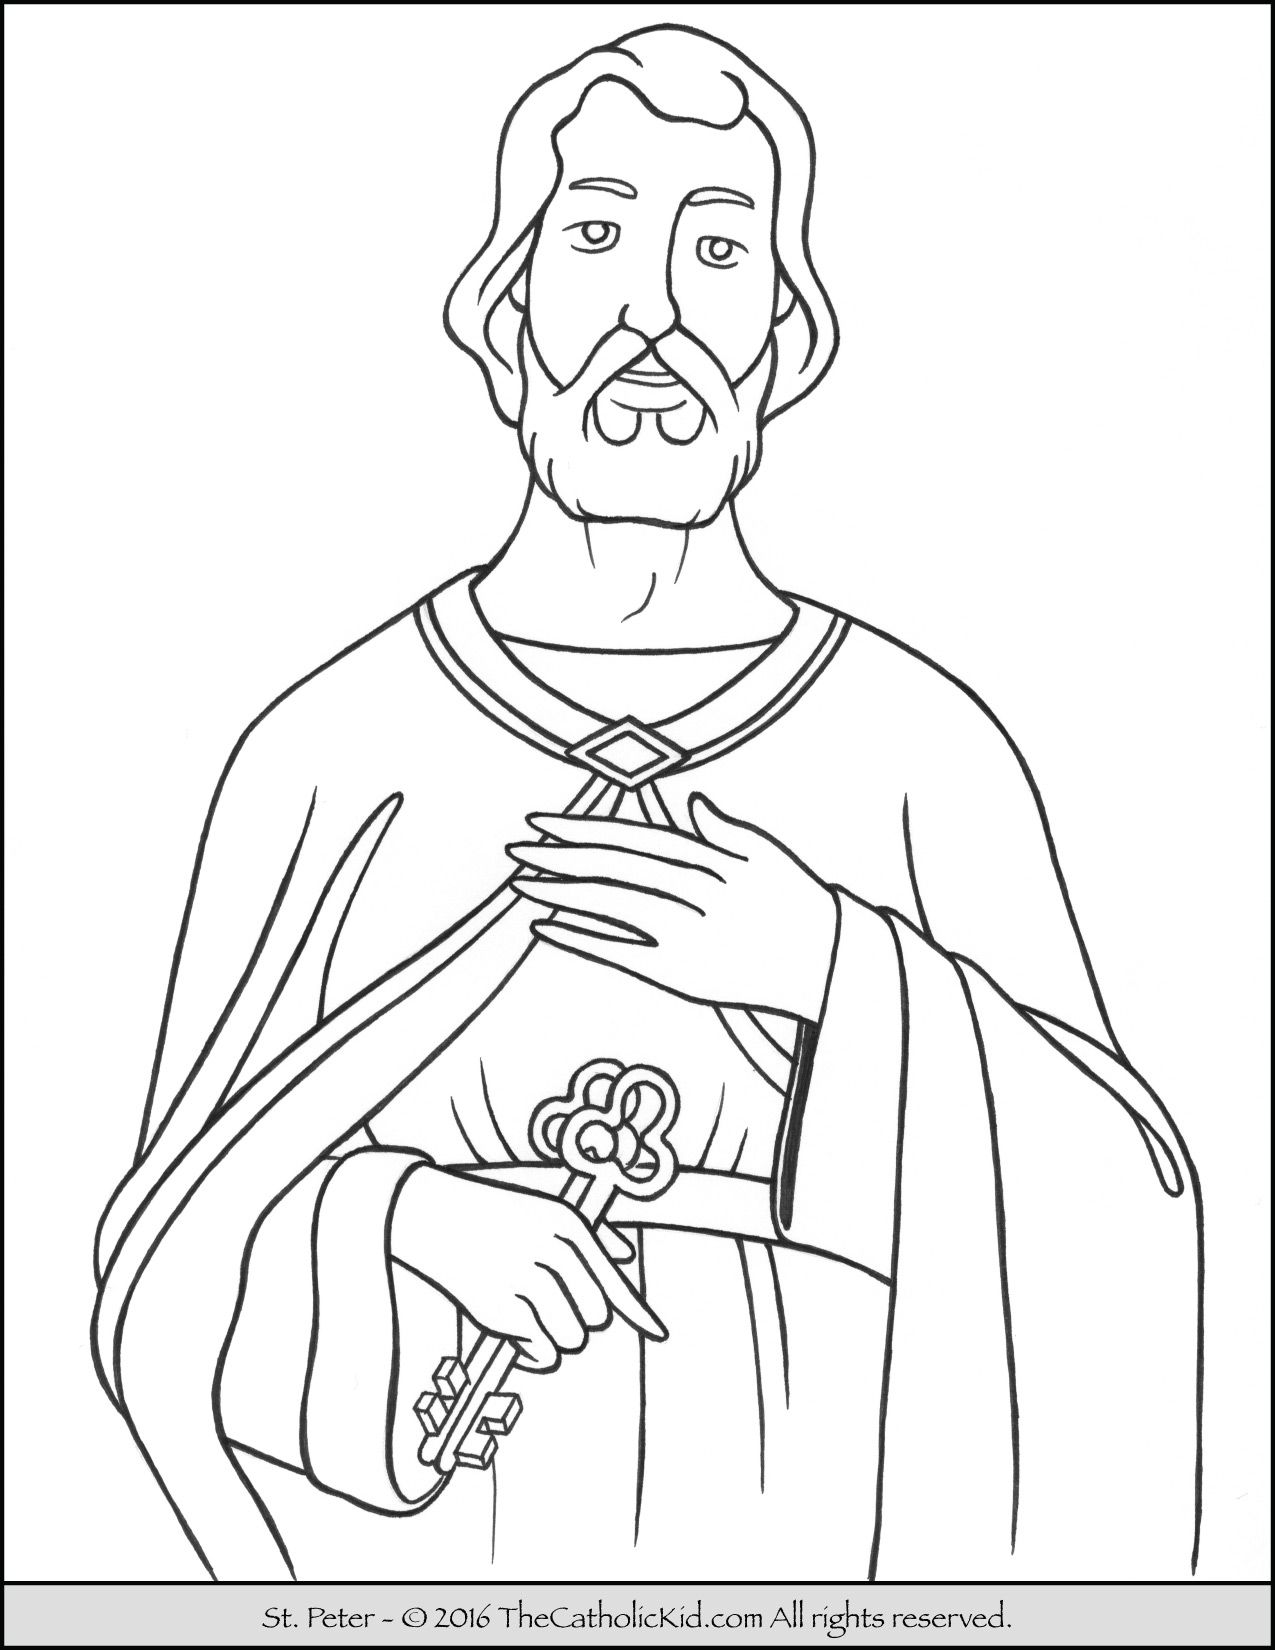 Saint Peter Coloring Page - The Catholic Kid | Catholic Saints ...